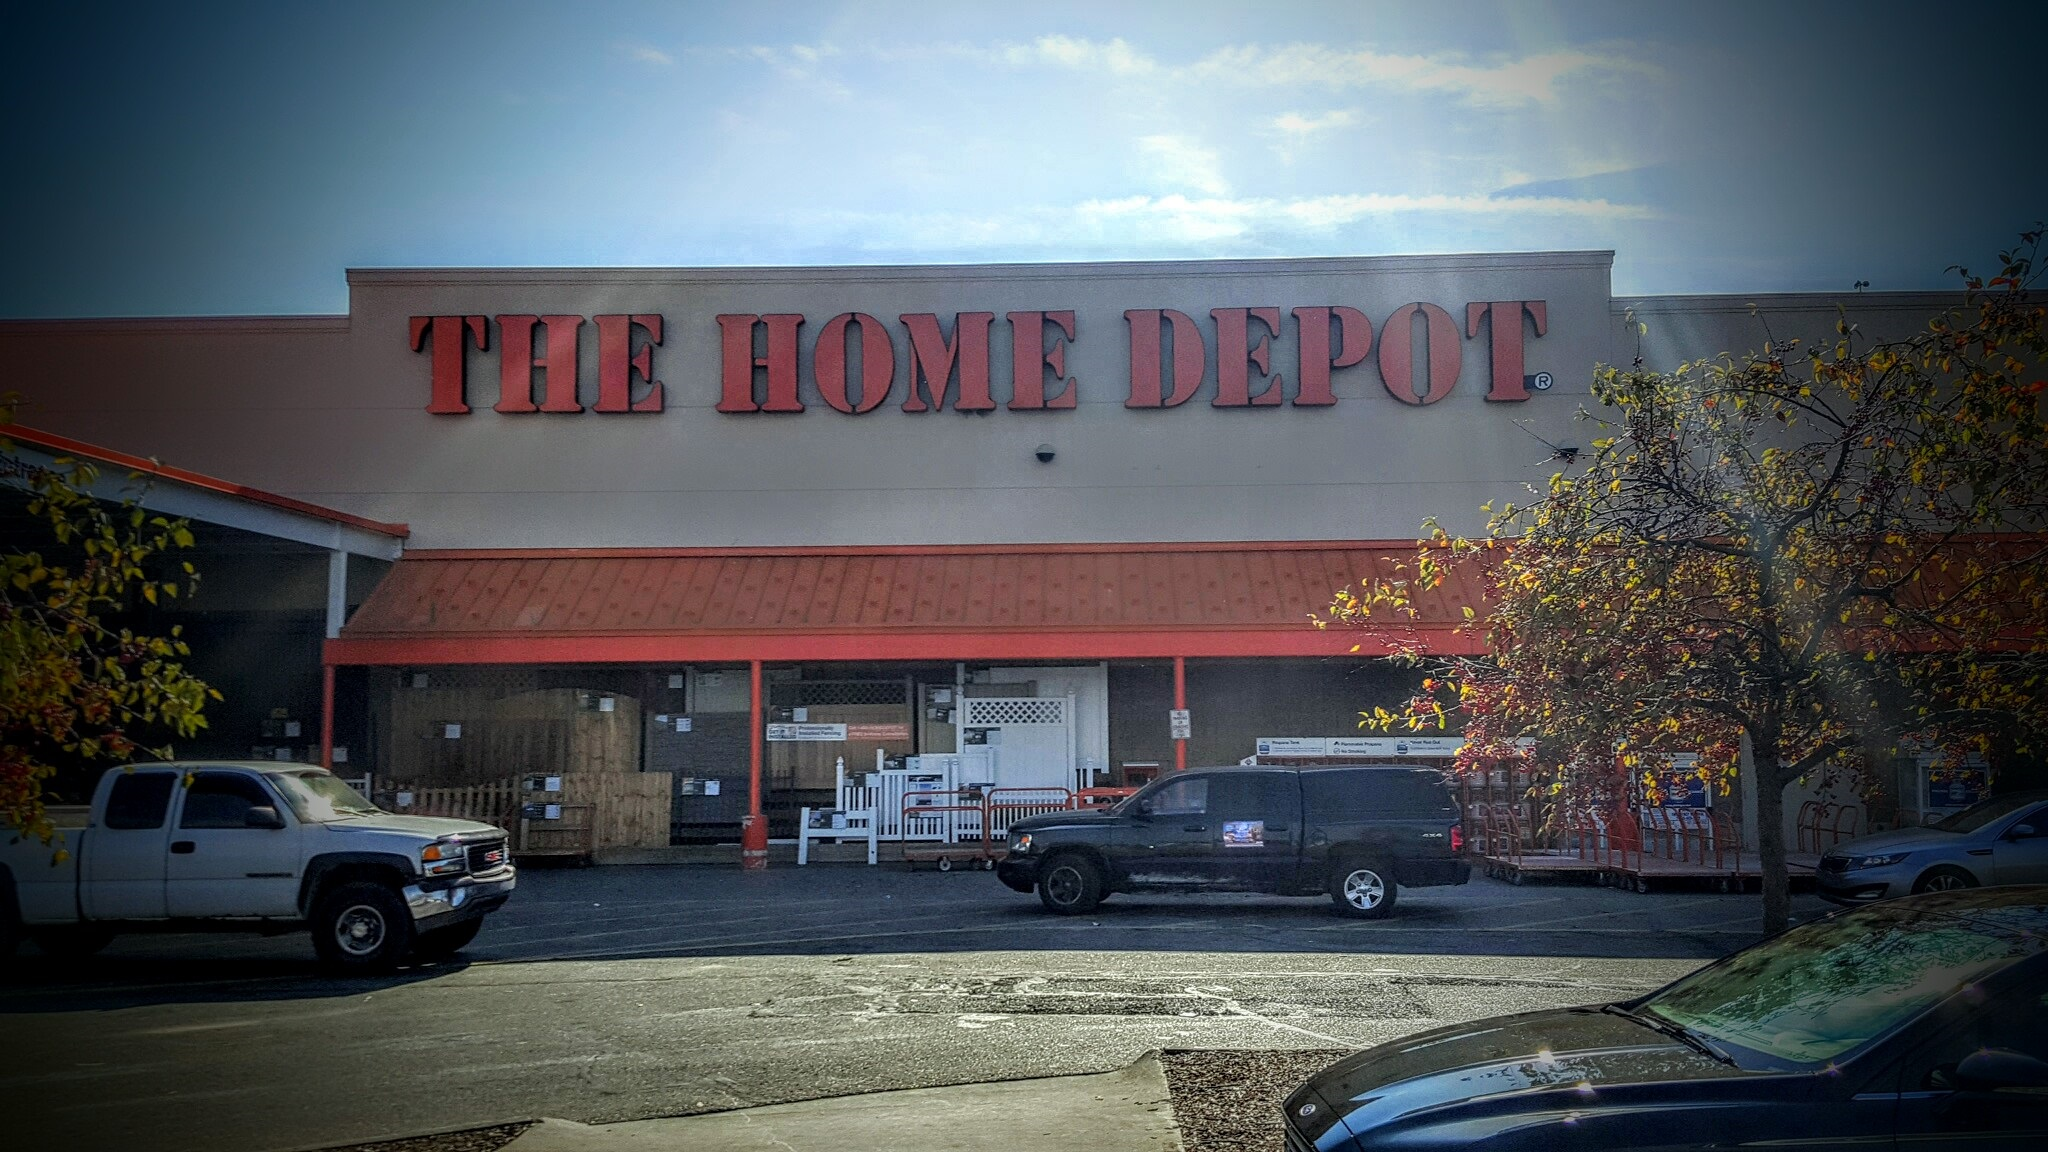 home depot conclusion Atlanta, aug 23, 2018 /prnewswire/ -- the home depot®, the world's largest home improvement retailer, today announced that craig menear, chairman, ceo and president, and carol tomé, executive vice president, corporate services and cfo, will present at the goldman sachs 25th annual global retailing conference in new.